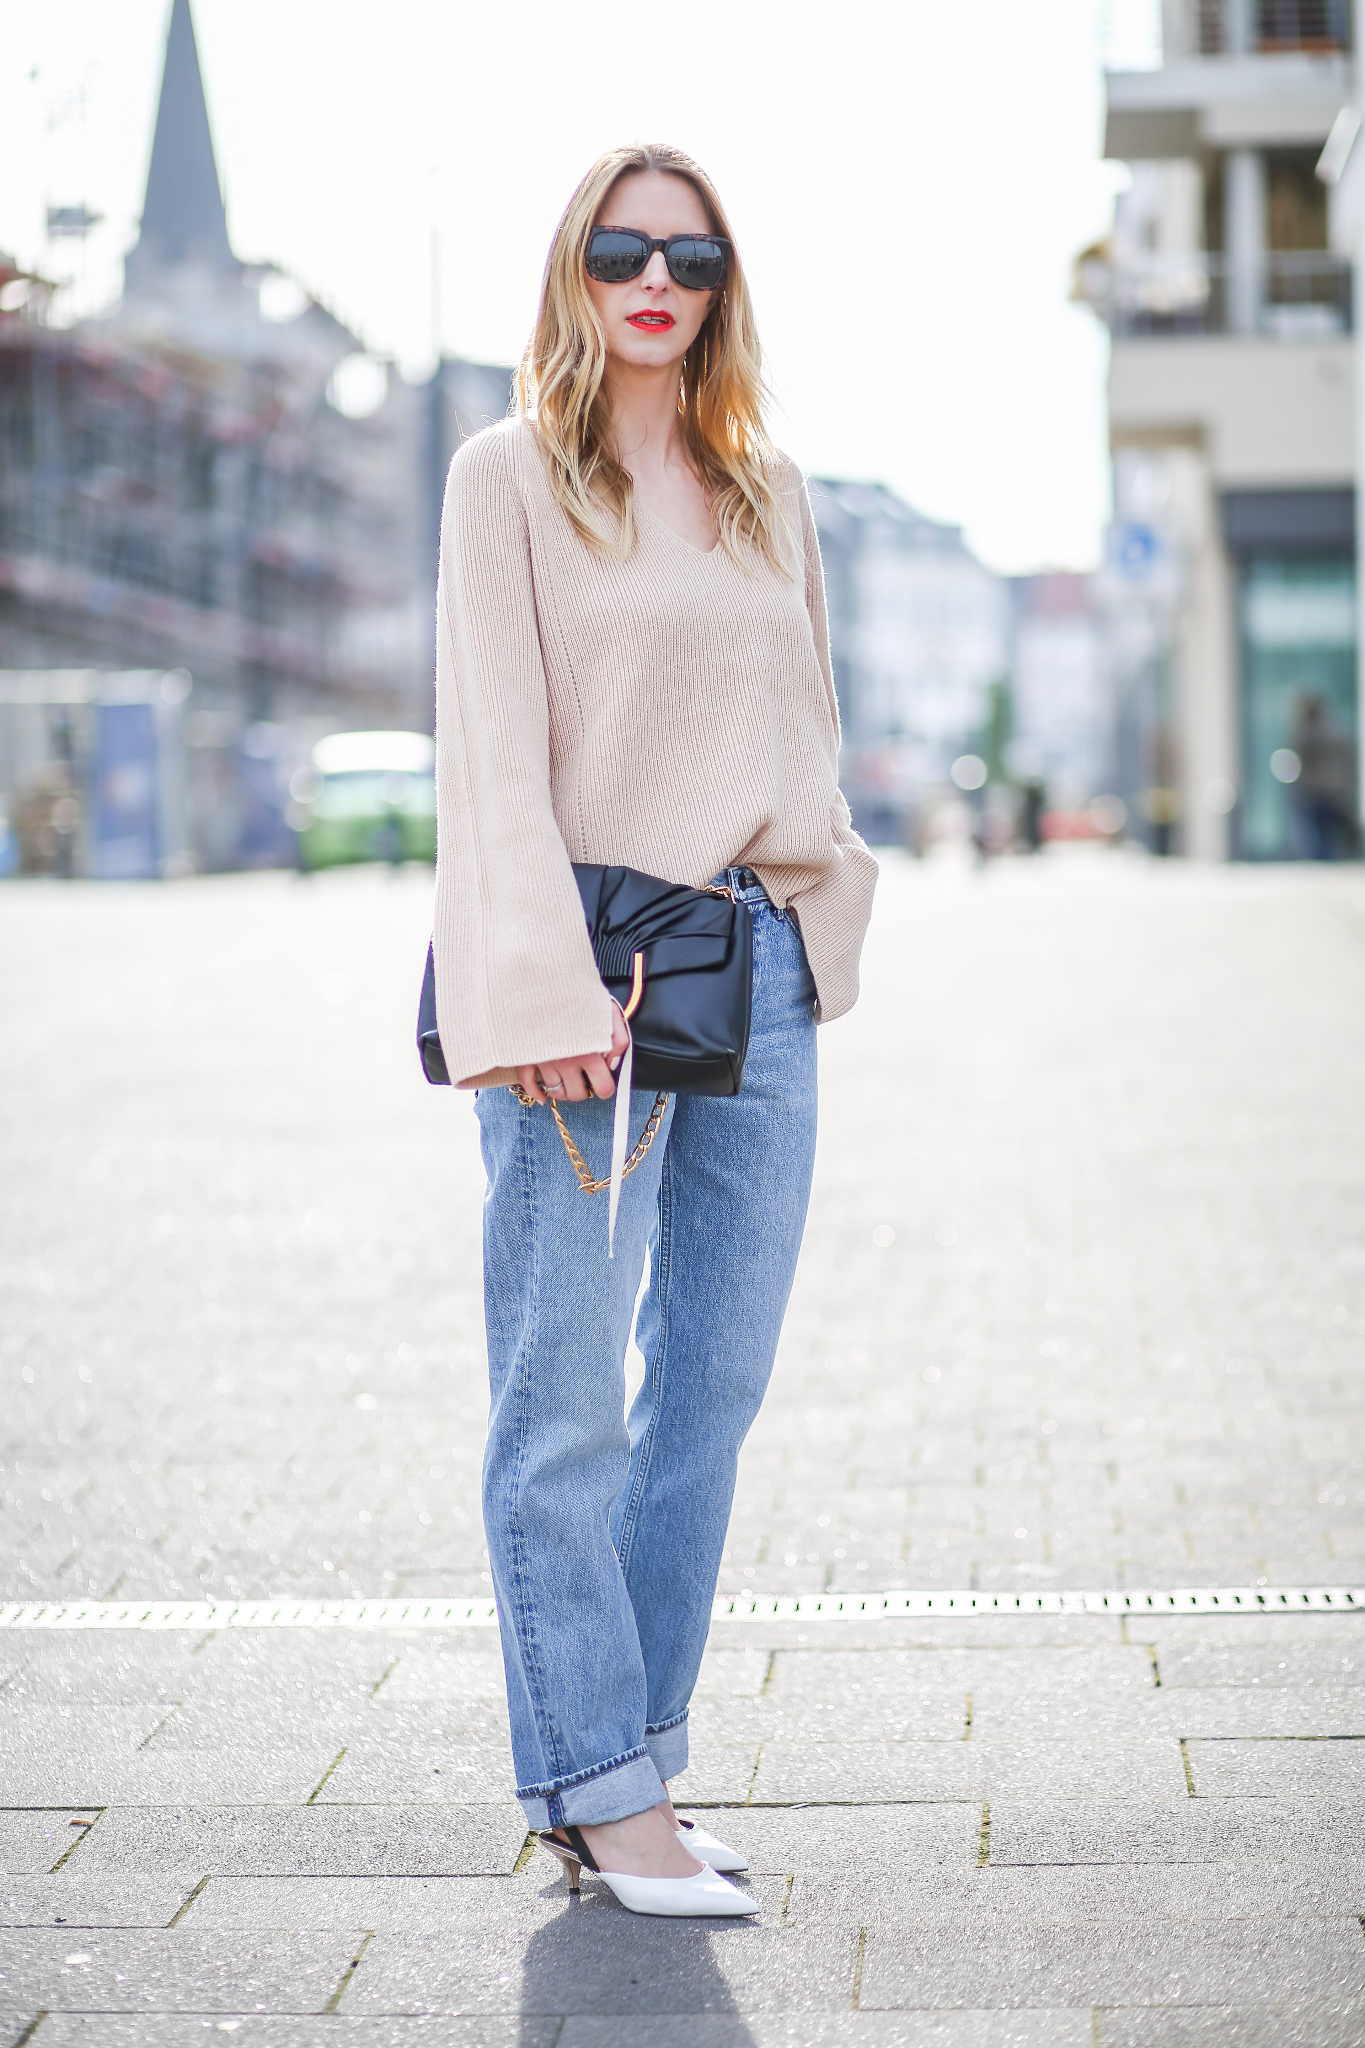 MOD-by-Monique-Fashion-Looks-Casual-Denim-13